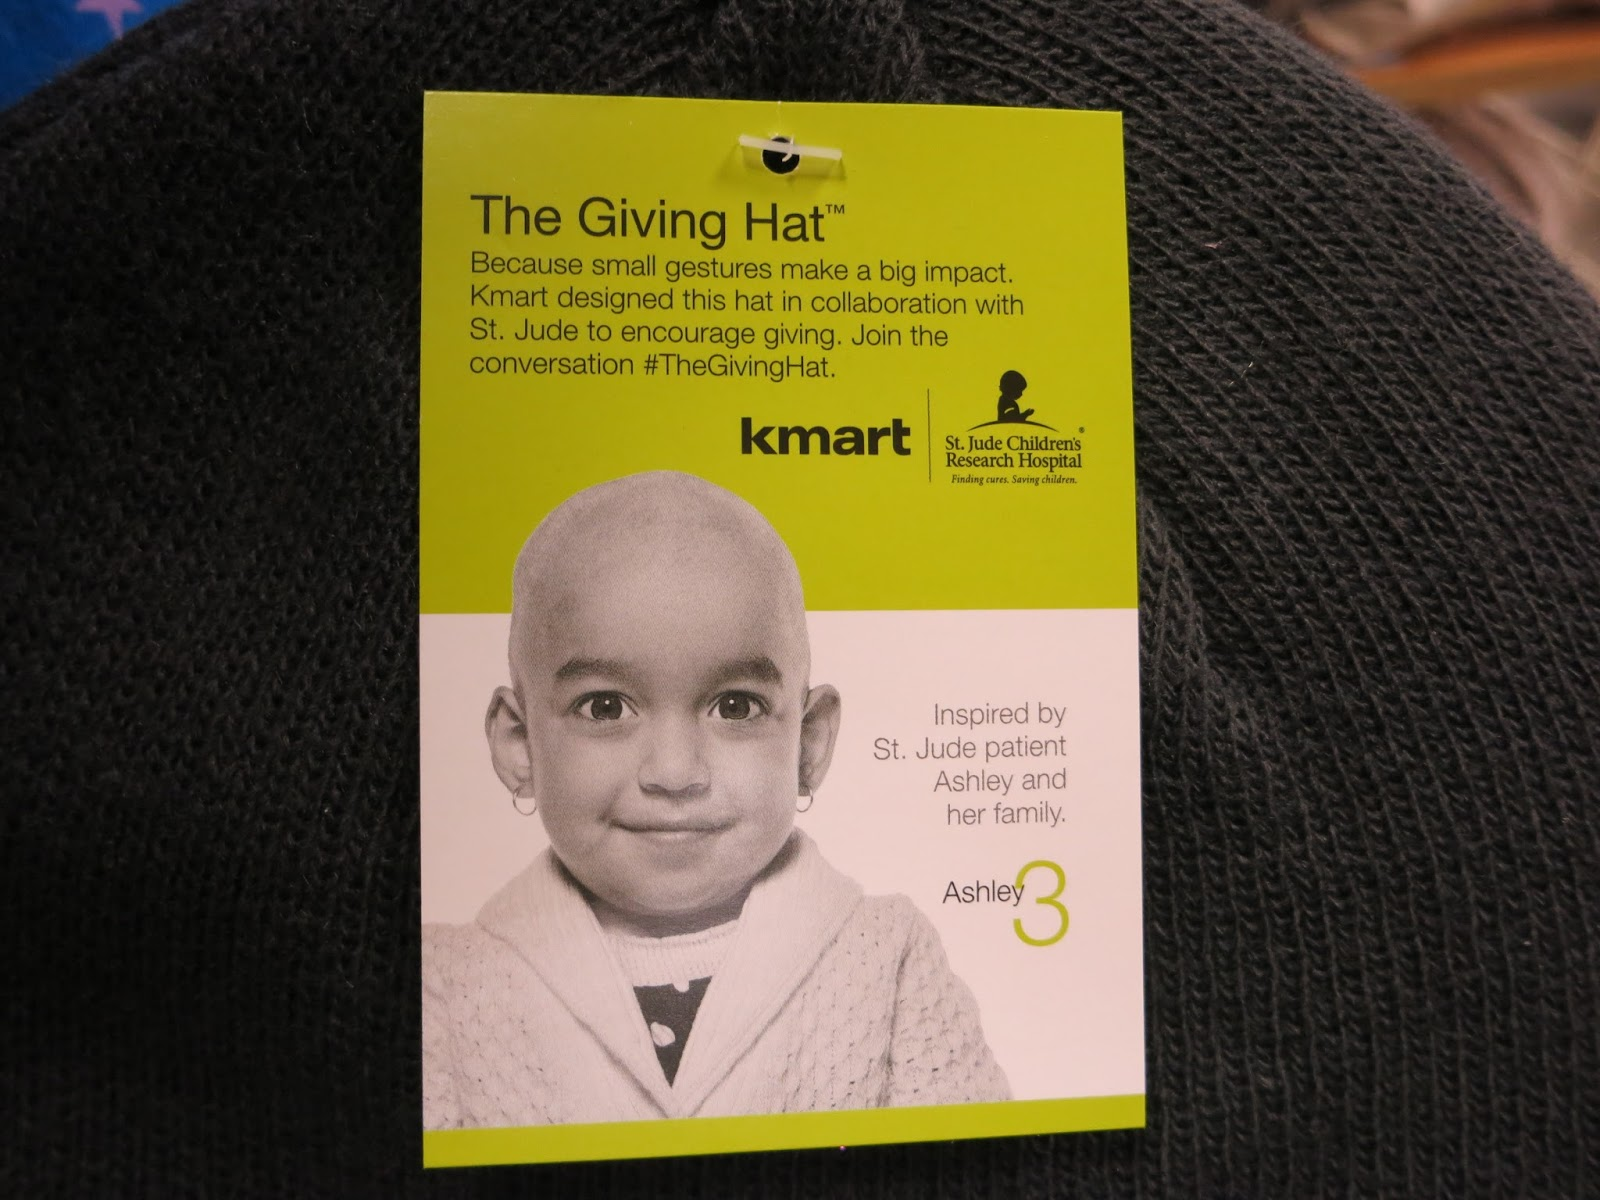 5c4fbc74 Since 2006 Kmart has raised more than 76 million dollars to help St. Jude,  their patients and families. With a small donation of 5 dollars (St. Jude  gets a ...